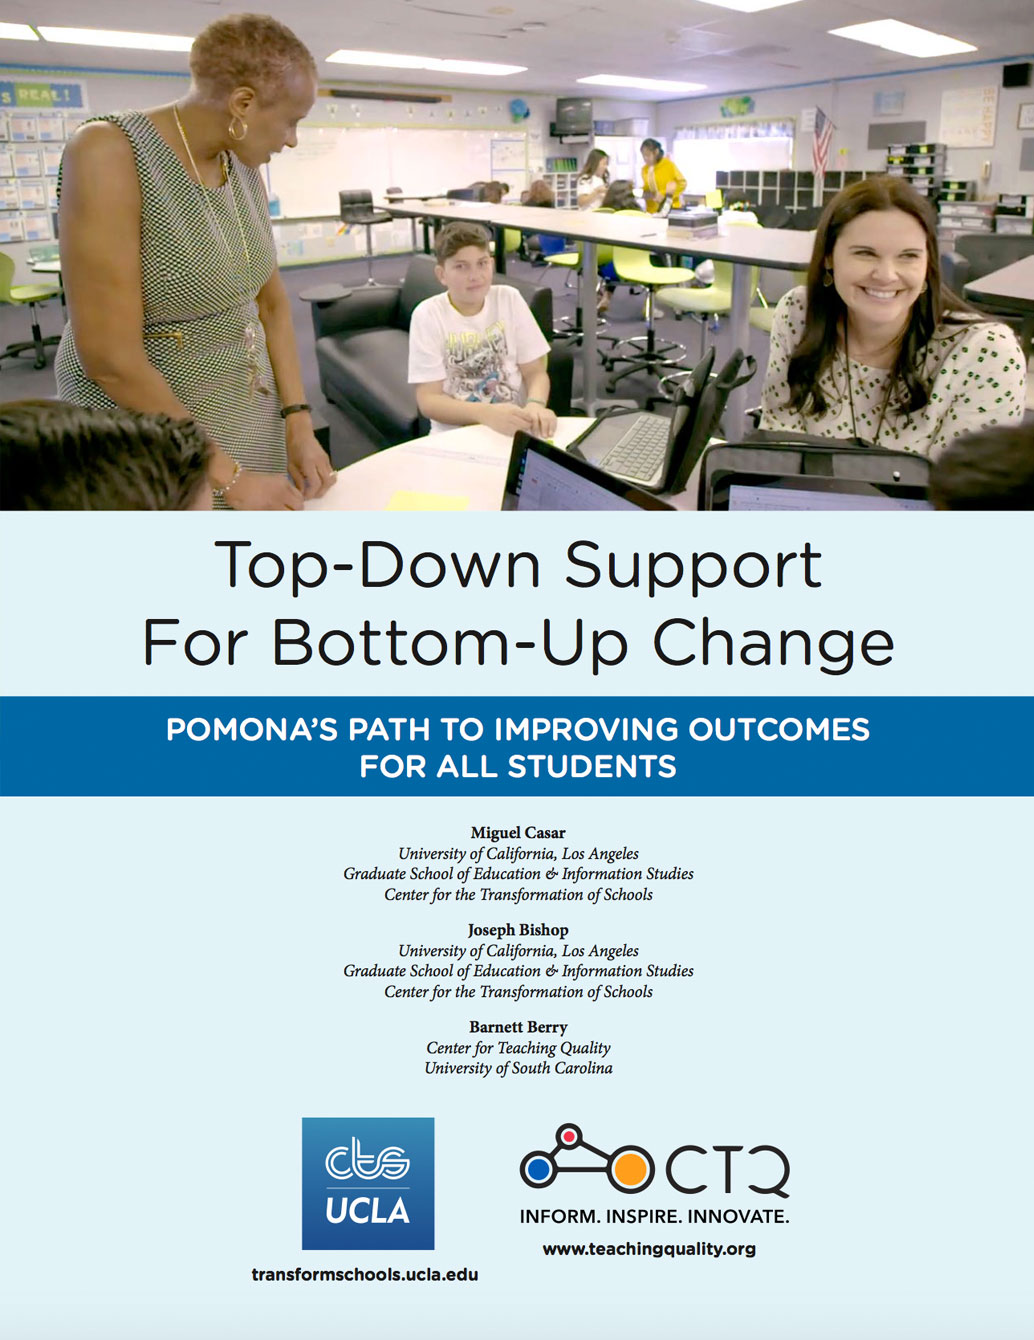 Top-Down Support for Bottom-Up Change: Pomonas Path to Improving Outcomes for All Students